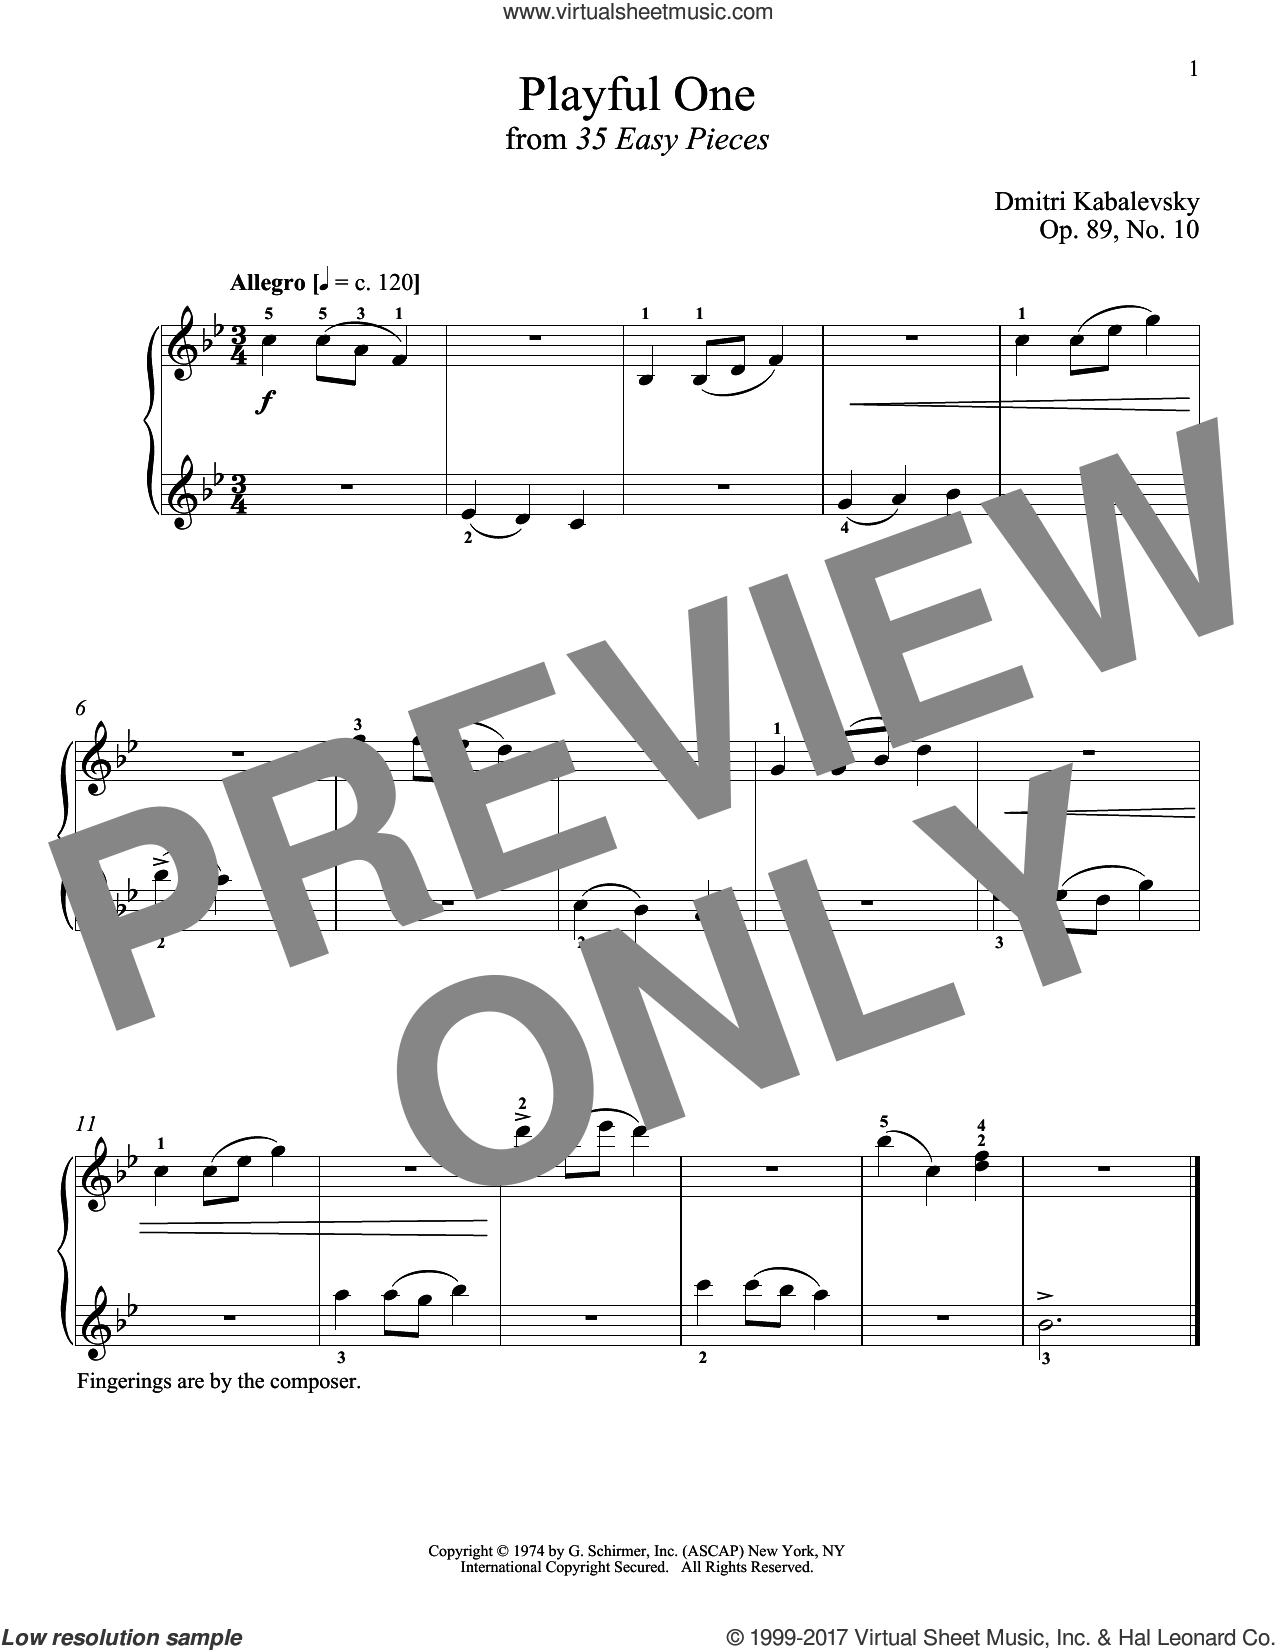 Playful One, Op. 89, No. 10 sheet music for piano solo by Dmitri Kabalevsky and Richard Walters, classical score, intermediate skill level